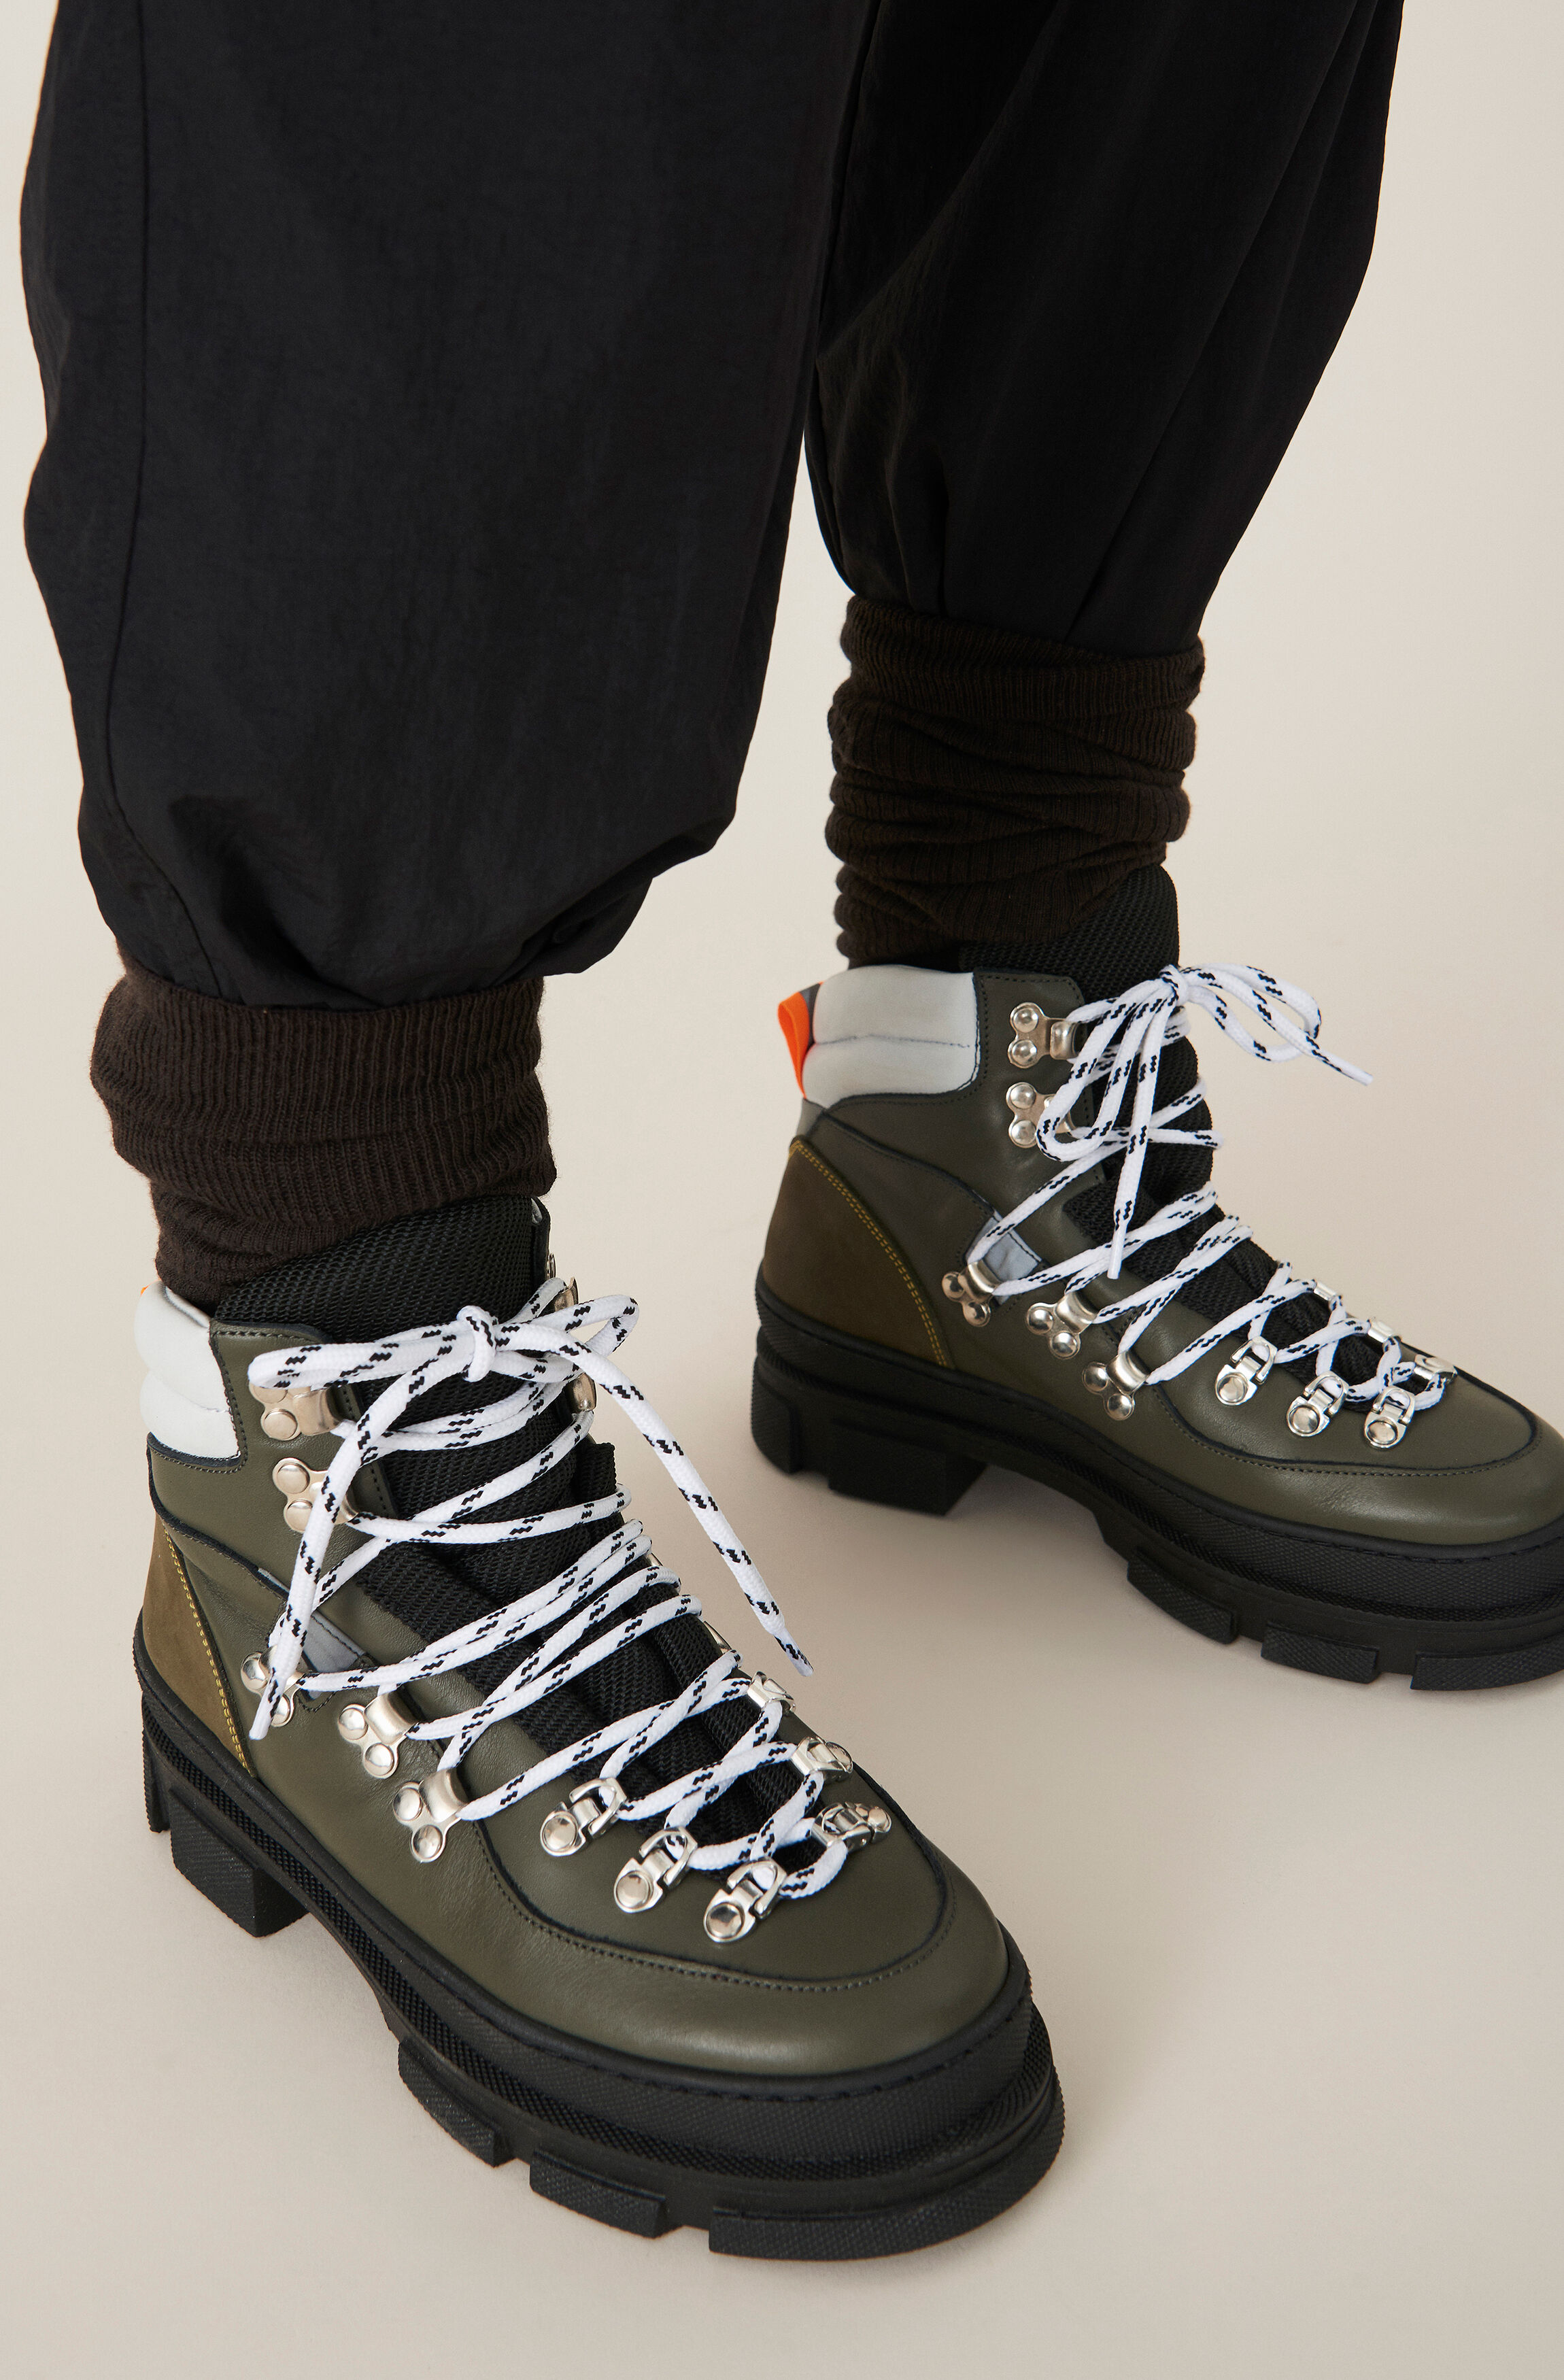 GANNI Sporty Hiking Boots ( 300.00 GBP